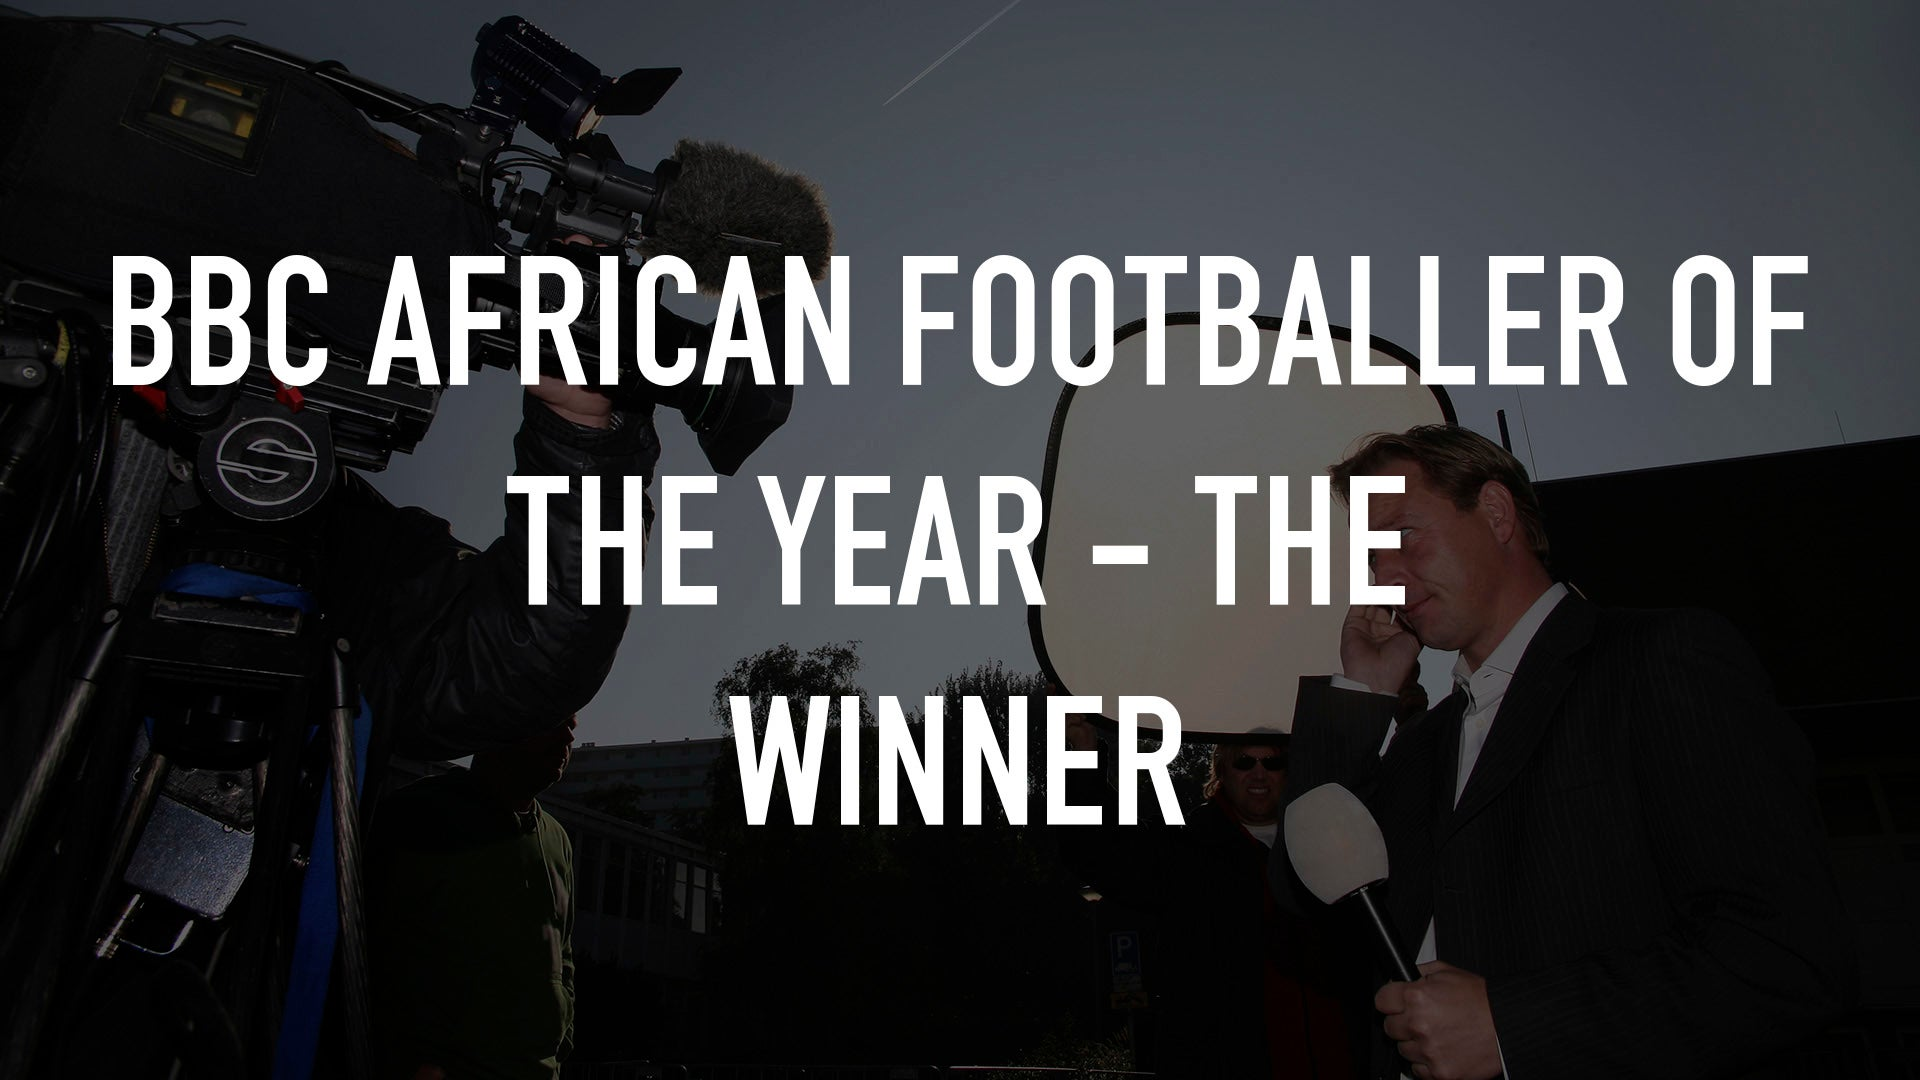 BBC African Footballer of the Year - The Winner